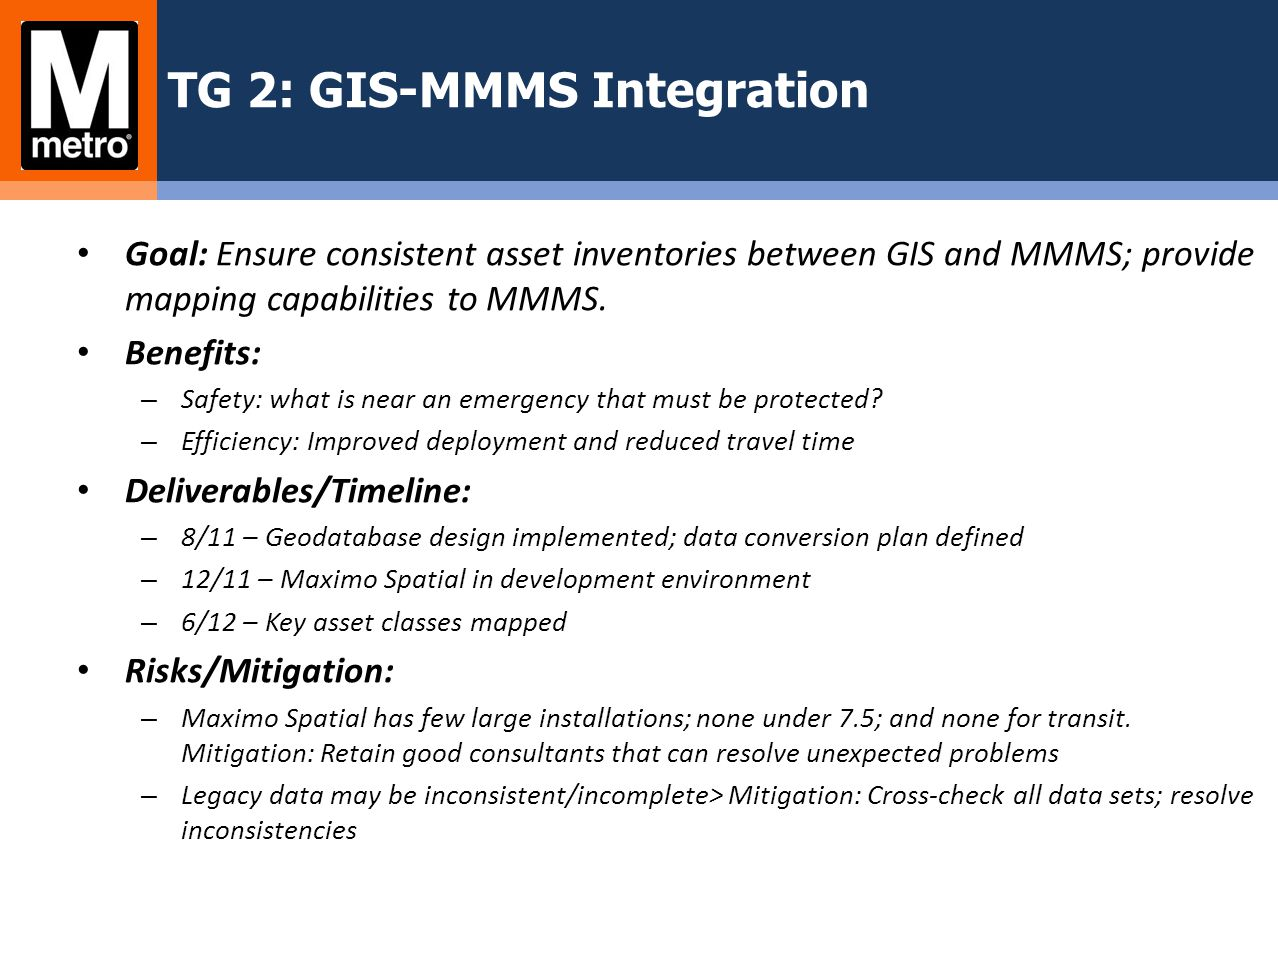 TG 2: GIS-MMMS Integration